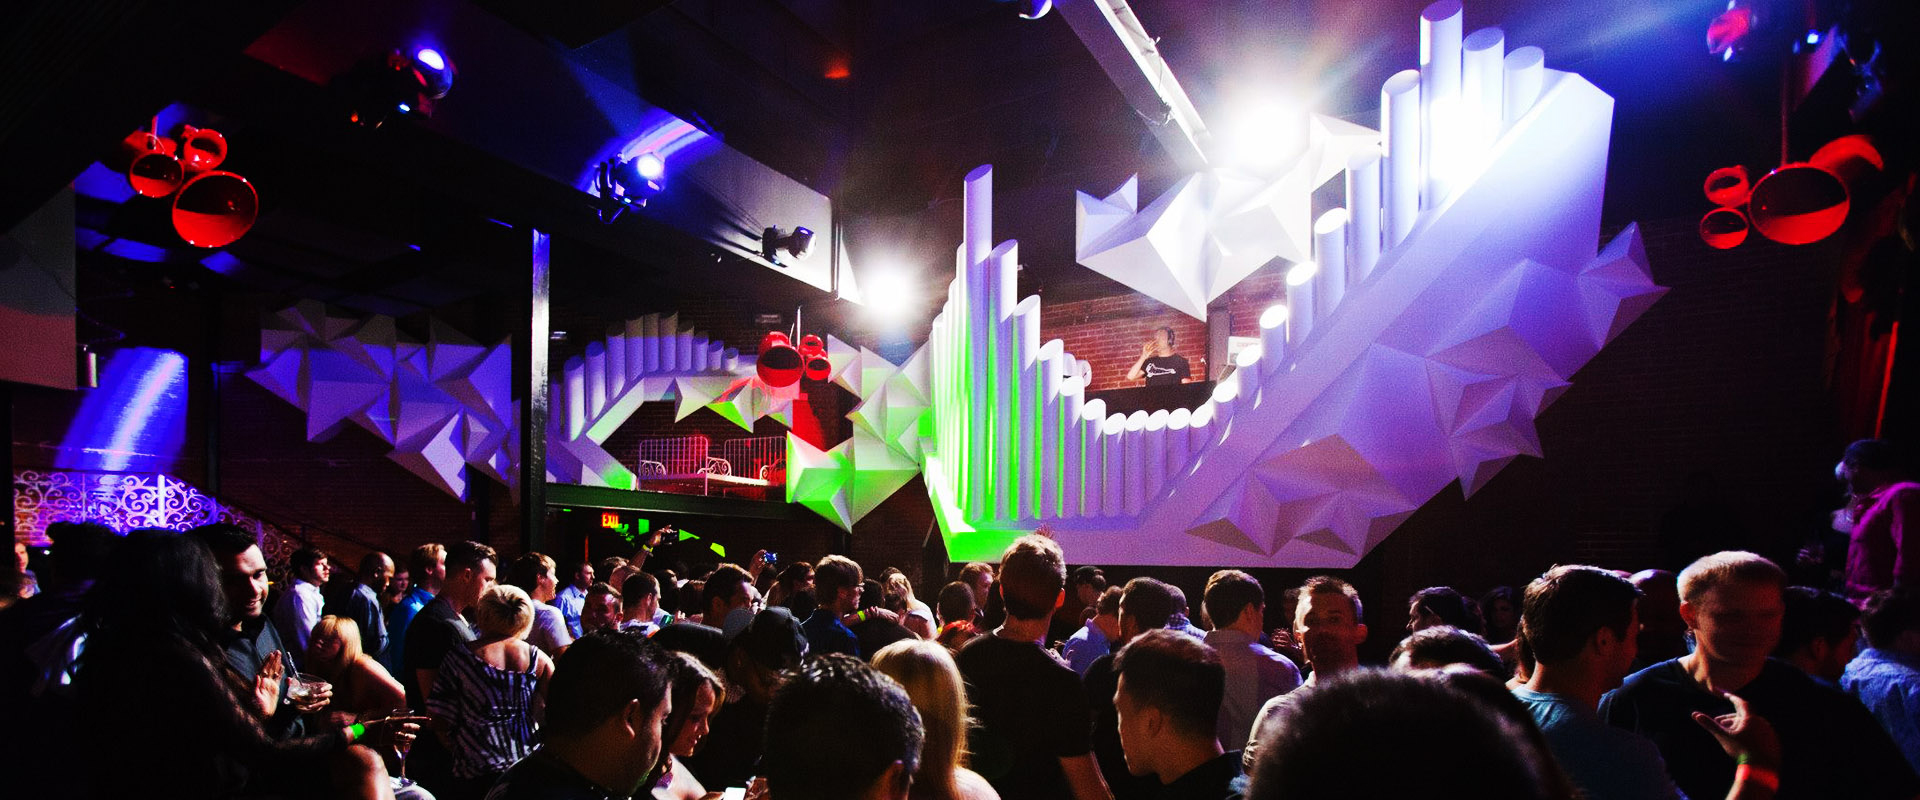 X Nightclub Projection Mapping